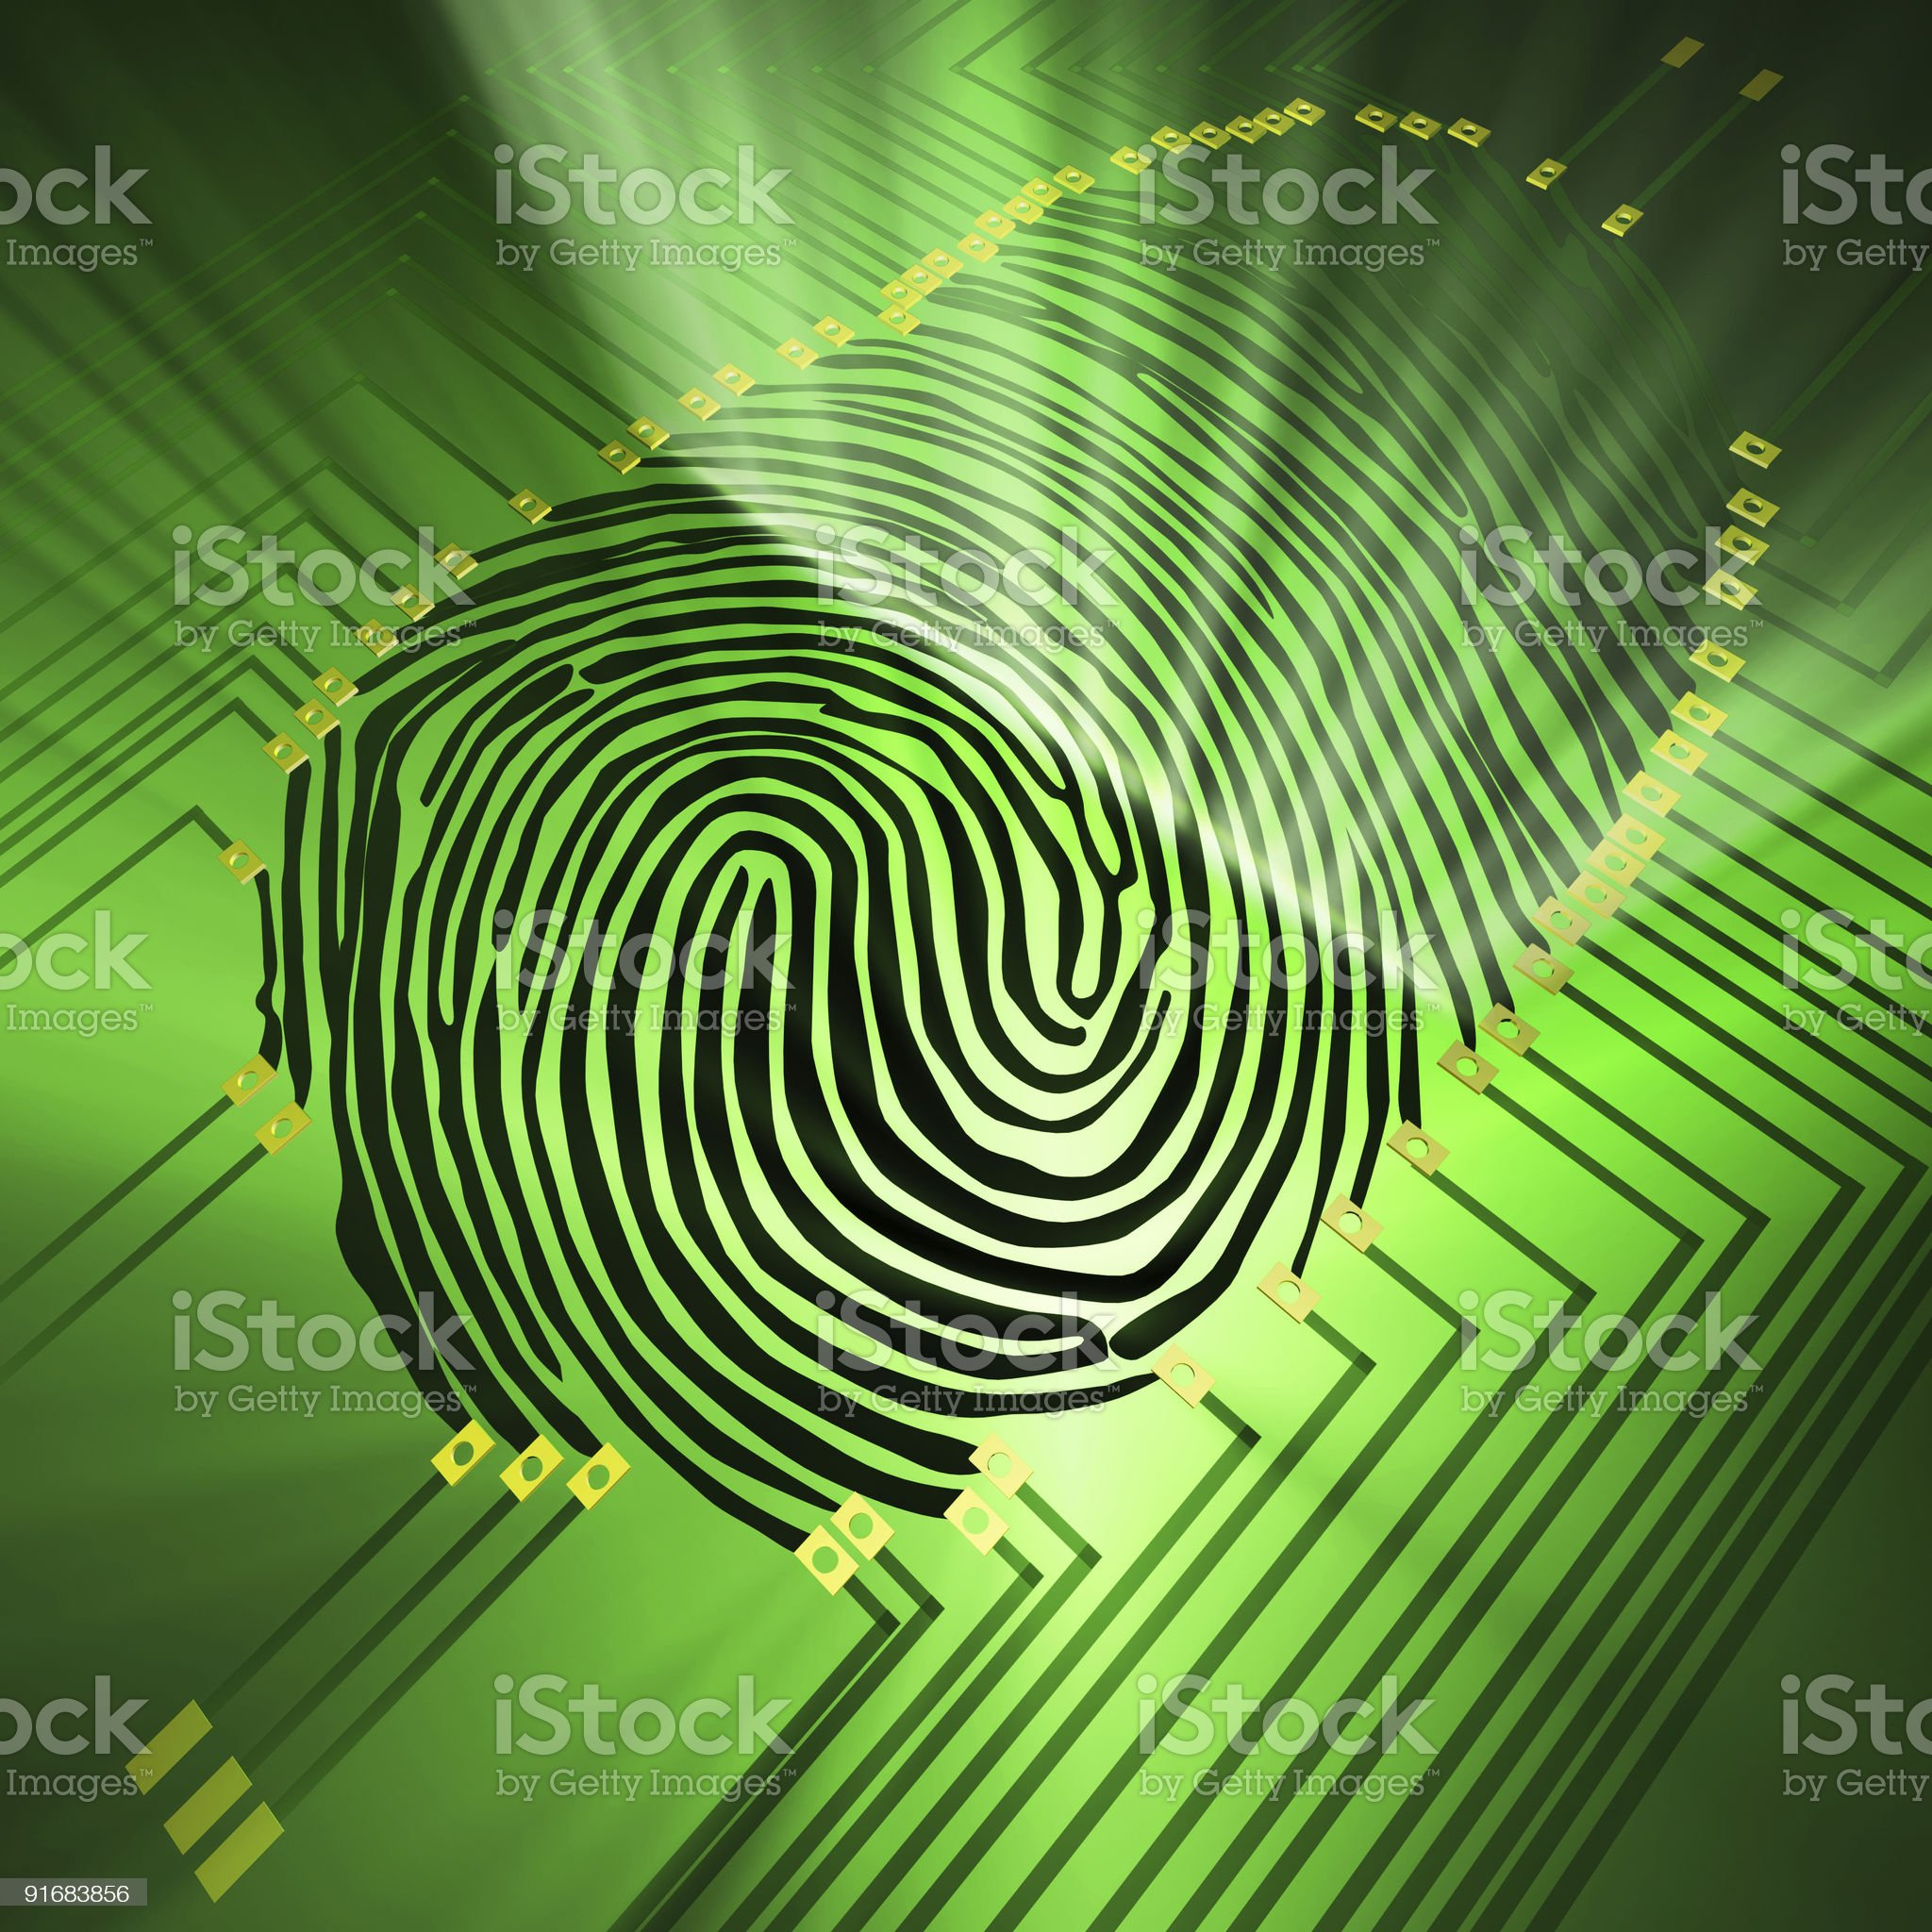 Fingerprint being analyzed on digital background royalty-free stock photo